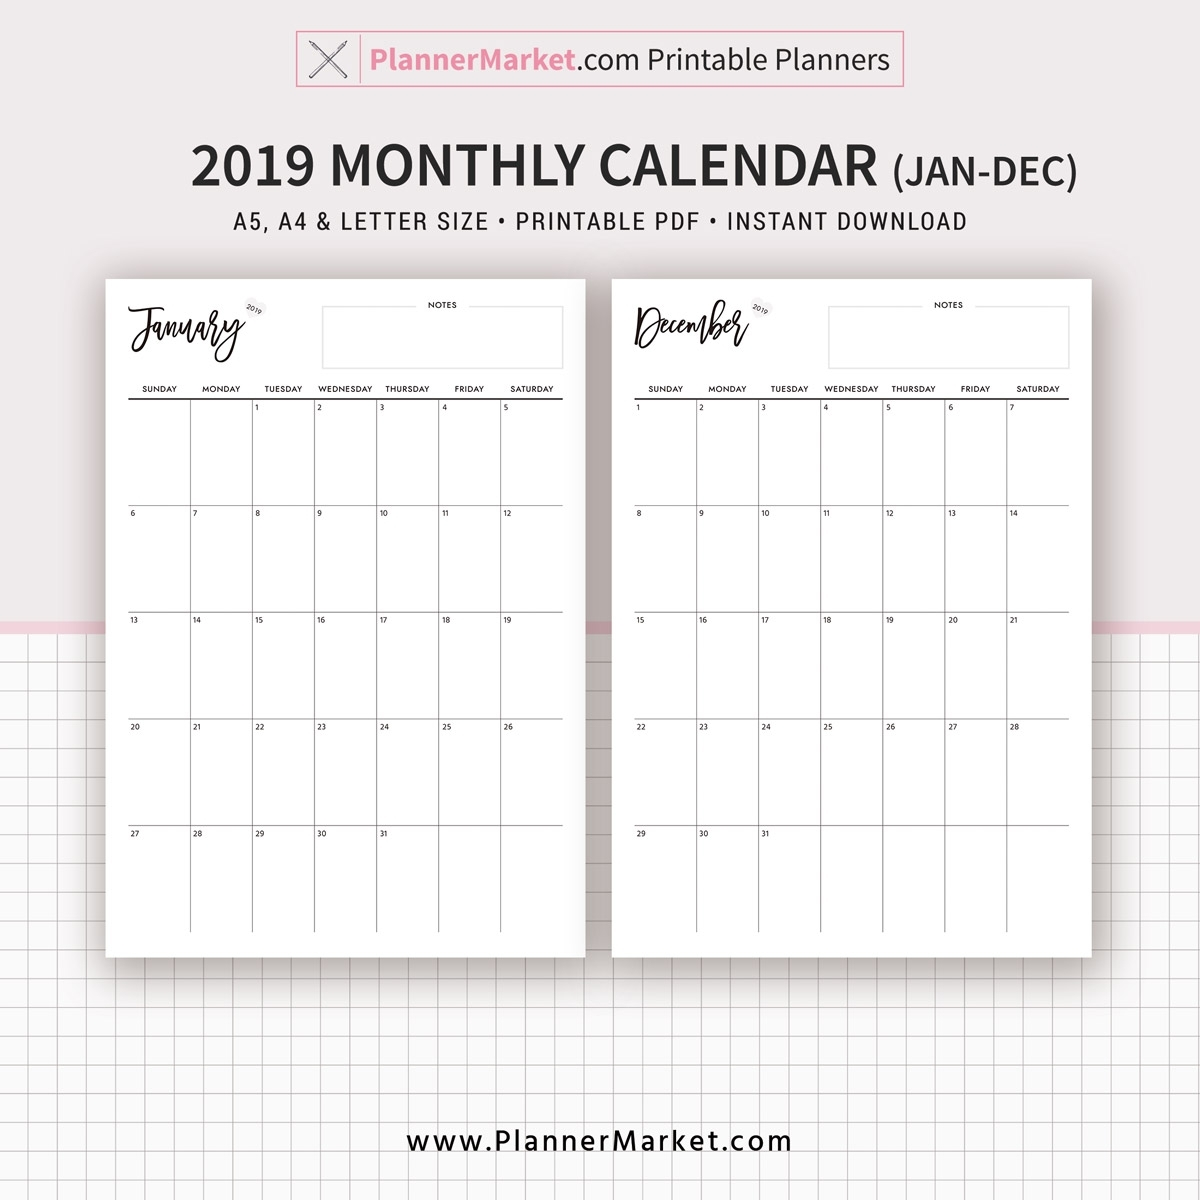 2019 Monthly Calendar, Monthly Planner, Printable Planner, A5, A4